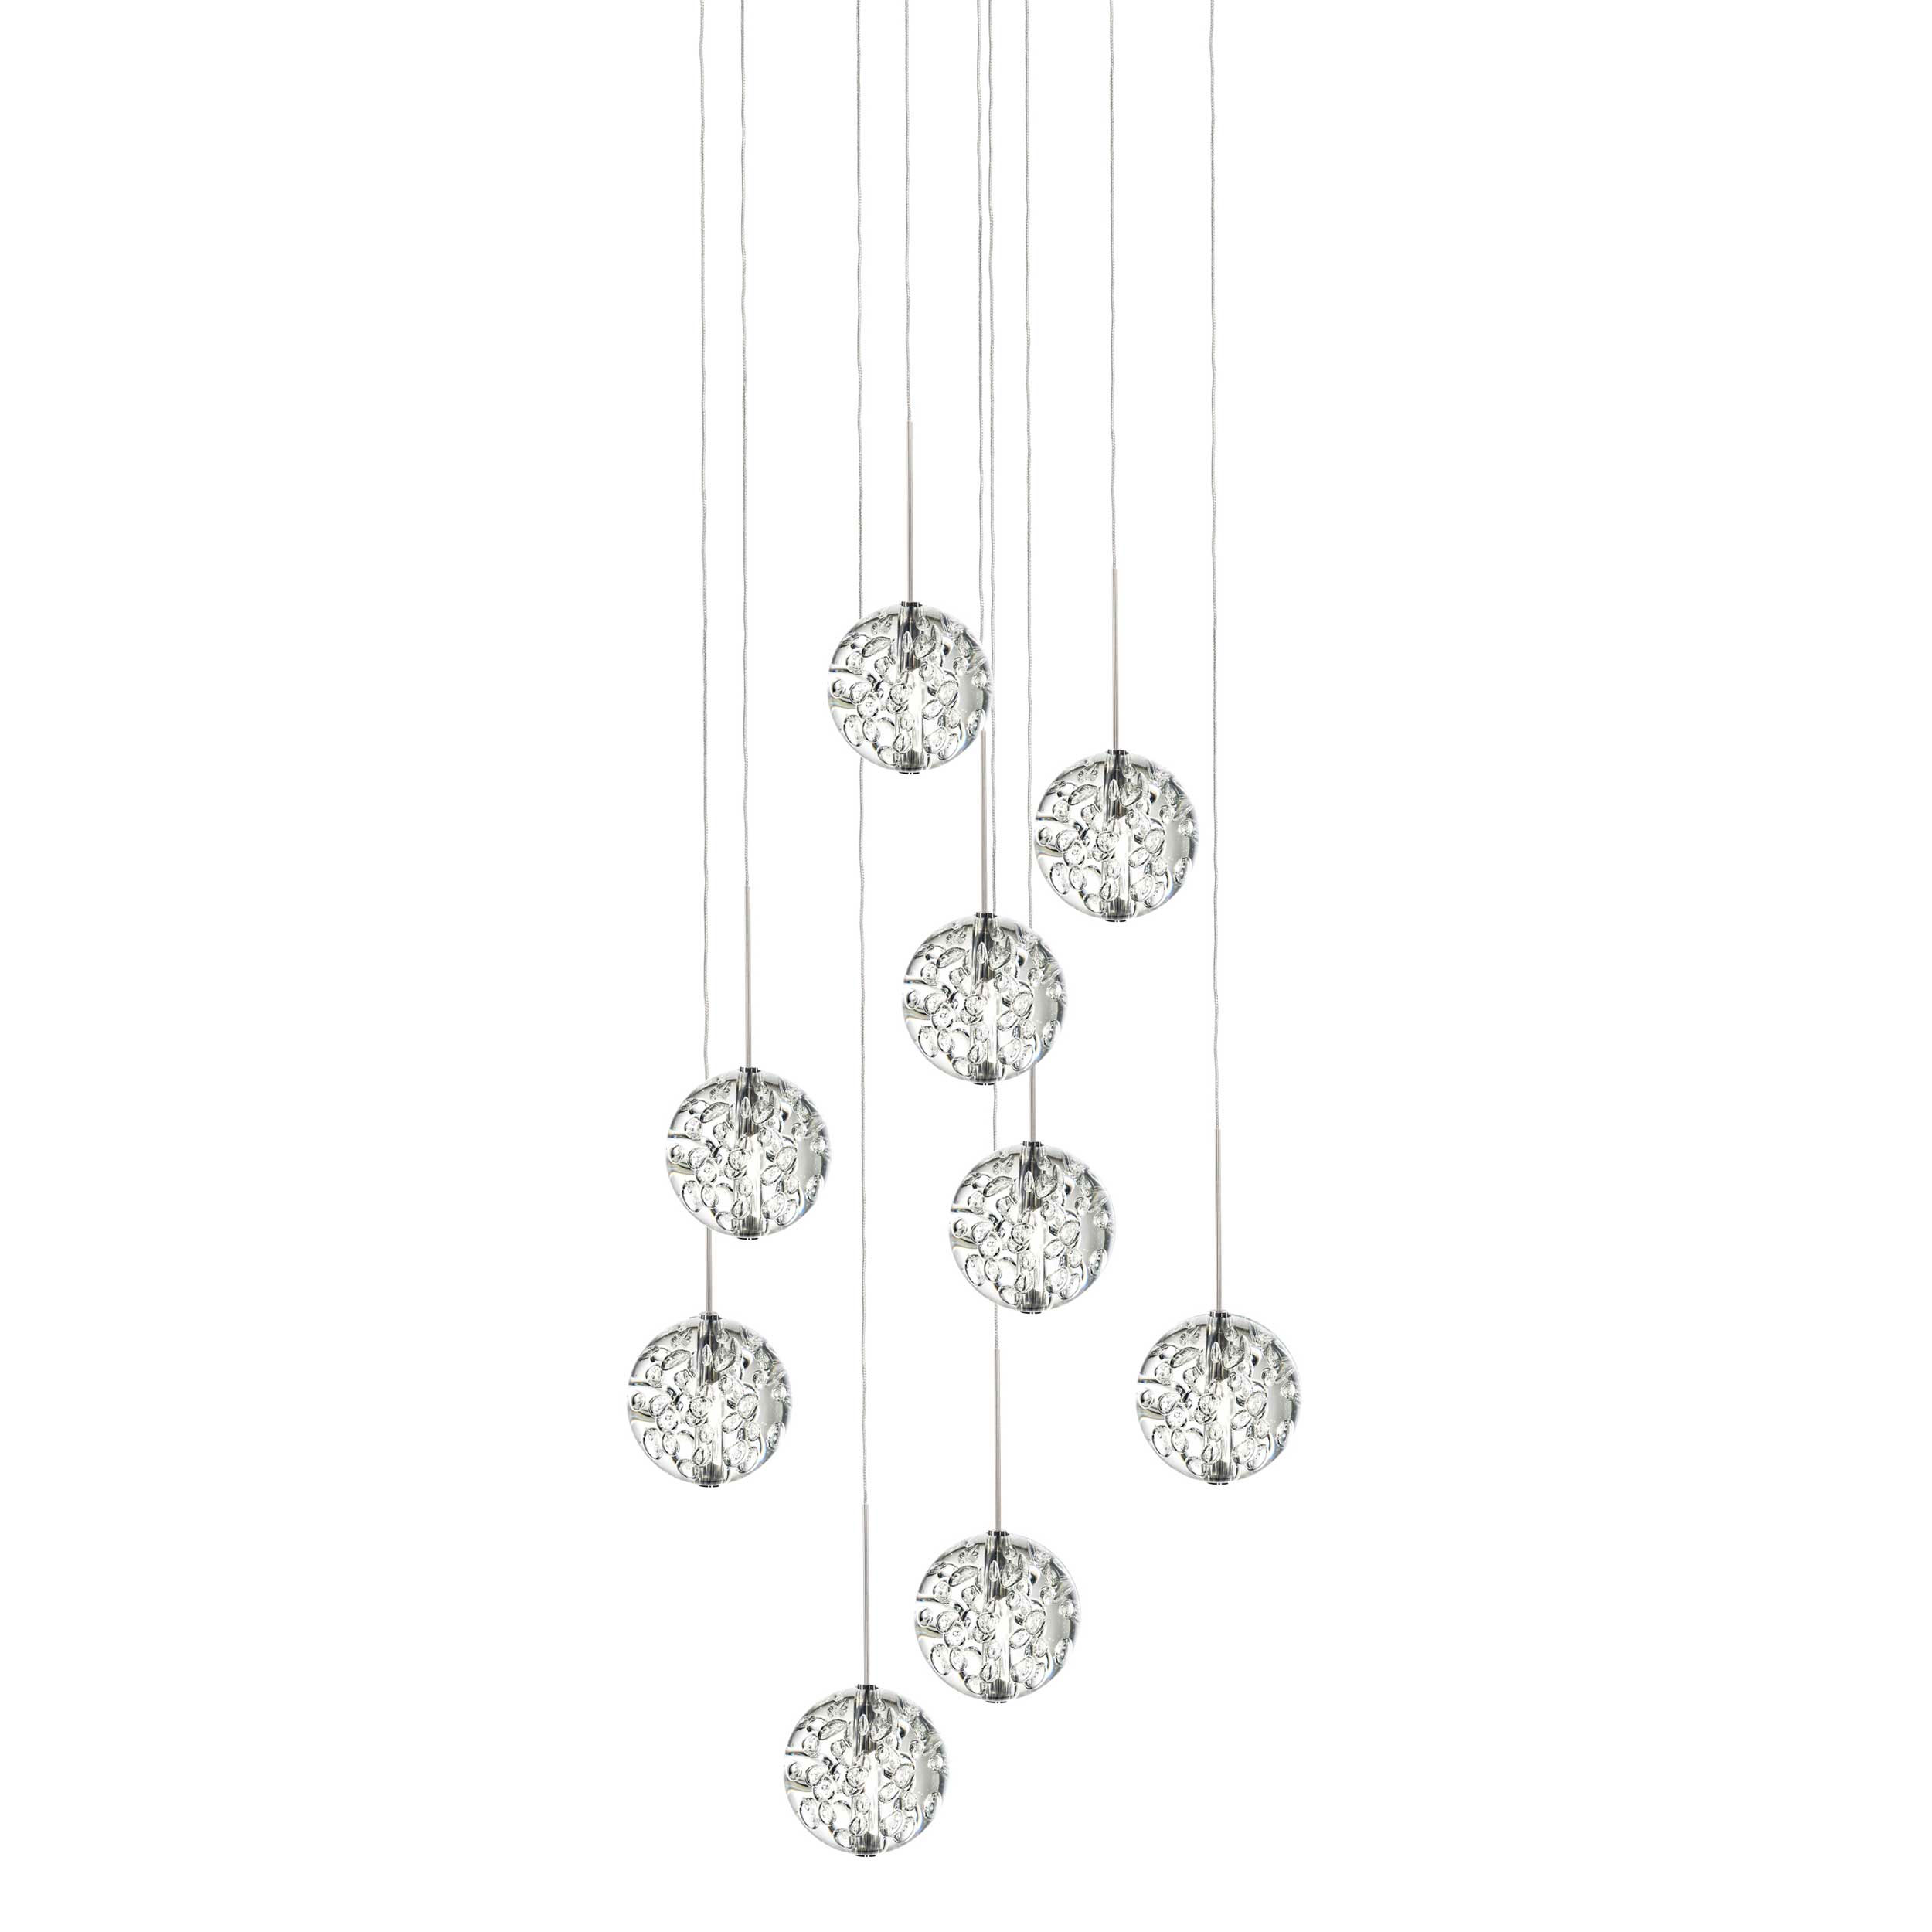 best service e77ae dce62 Bubble Ball 9 Light Round LED Pendant by PureEdge Lighting |  16RD-9-BBCL27-10FT-SN